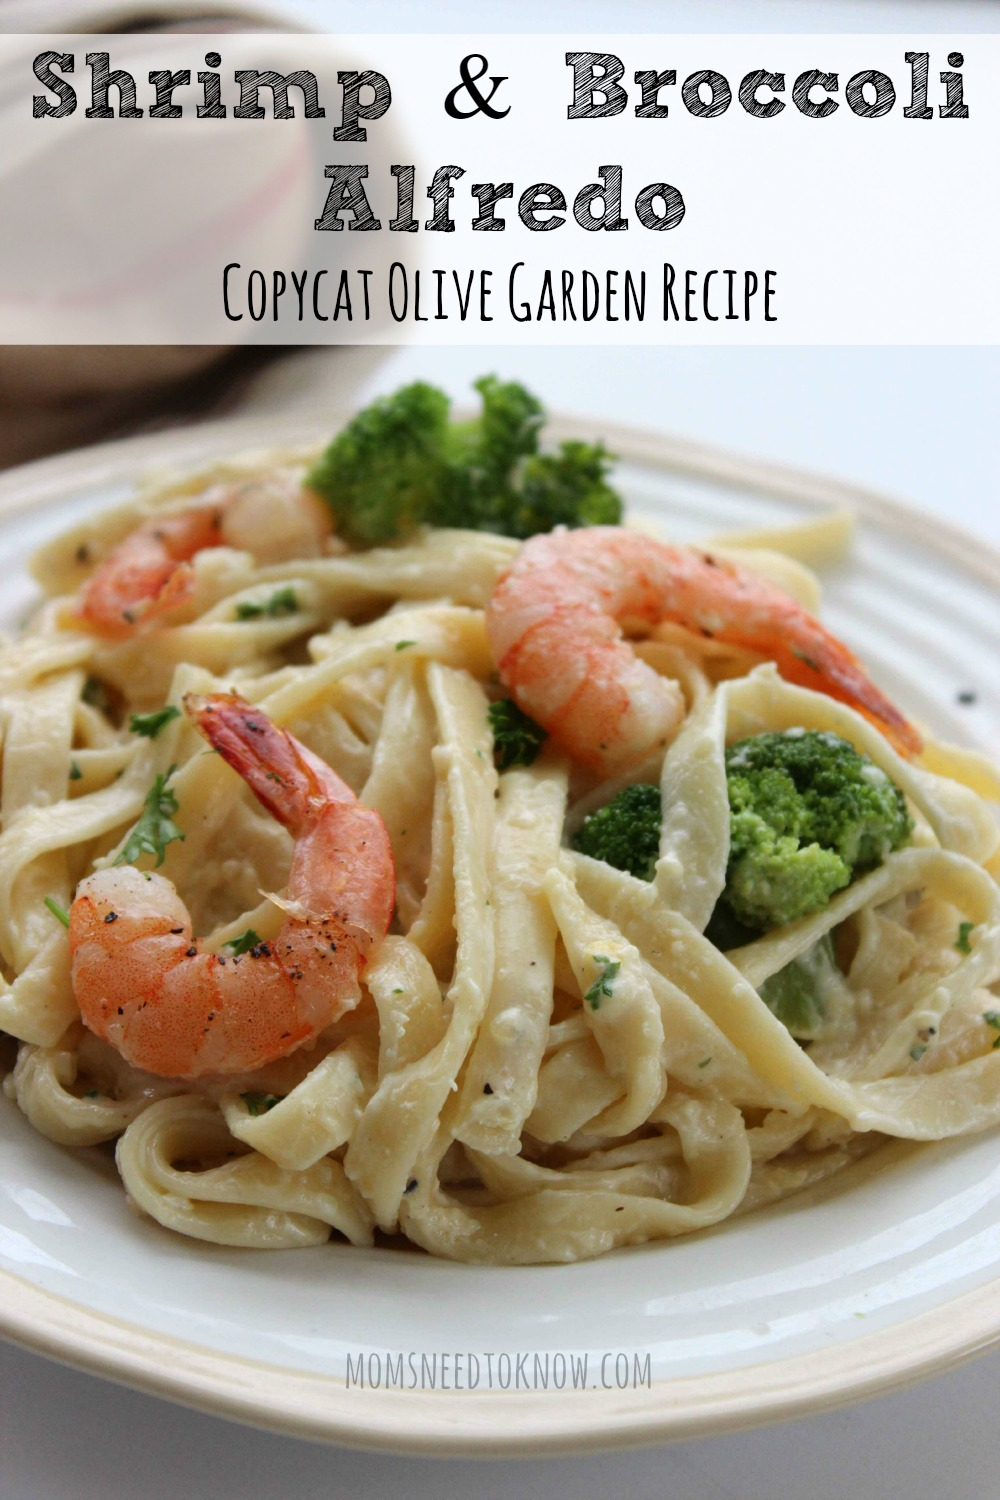 Copycat Olive Garden Shrimp and Broccoli Alfredo